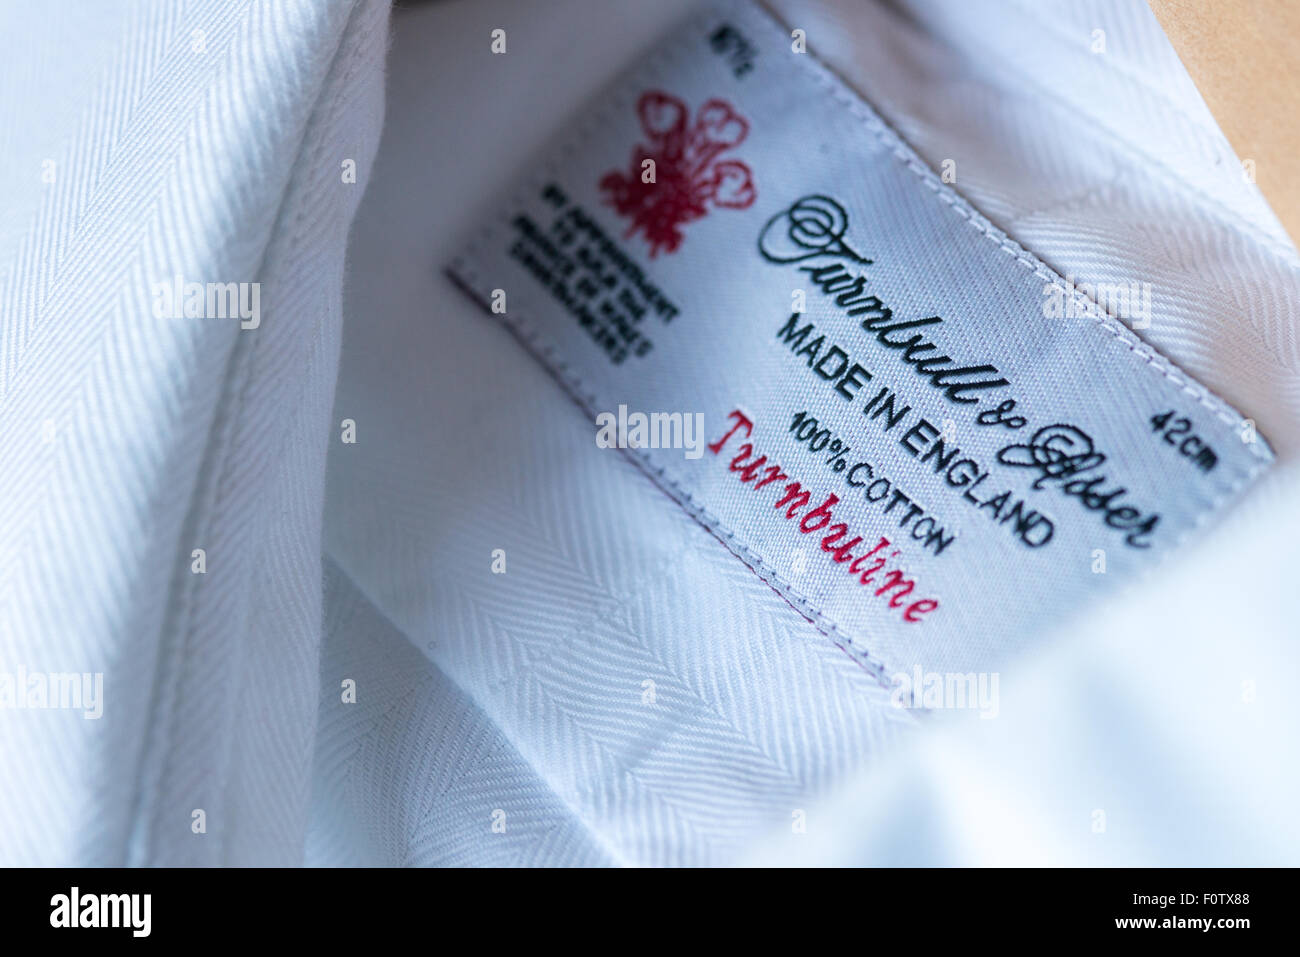 Turnbull & Asser shirt label, made in England - Stock Image